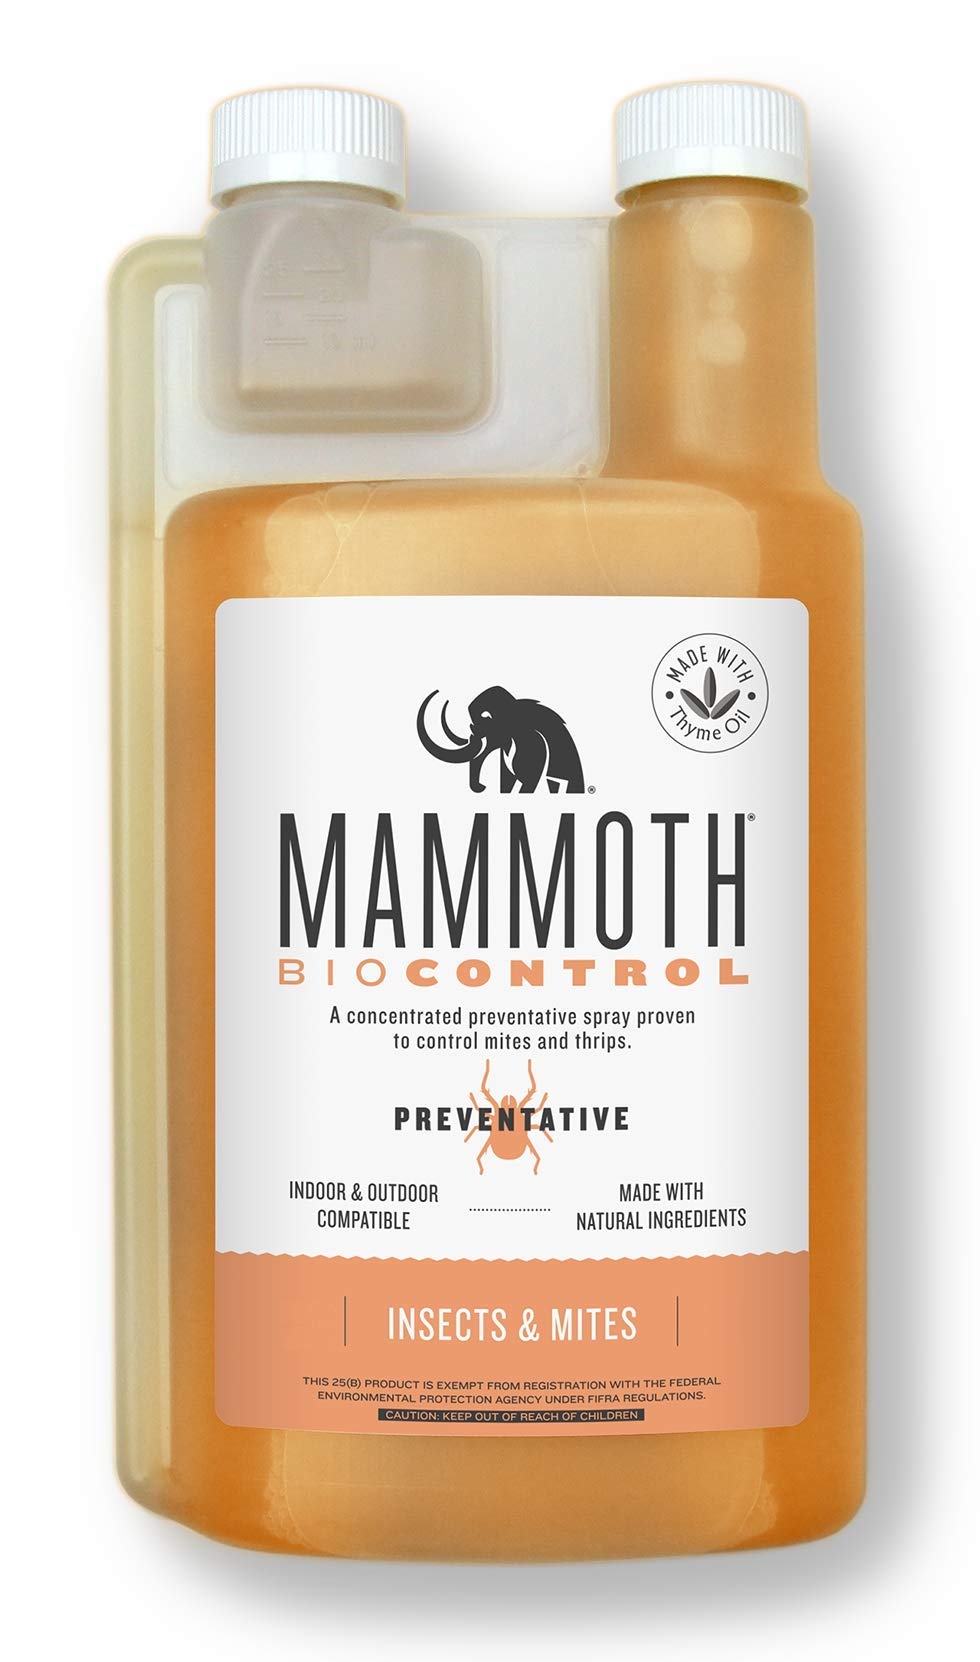 Mammoth Biocontrol Concentrated Preventative Insecticide Spray Foliar 500 ml Indoor & Outdoor Compatible by Mammoth P